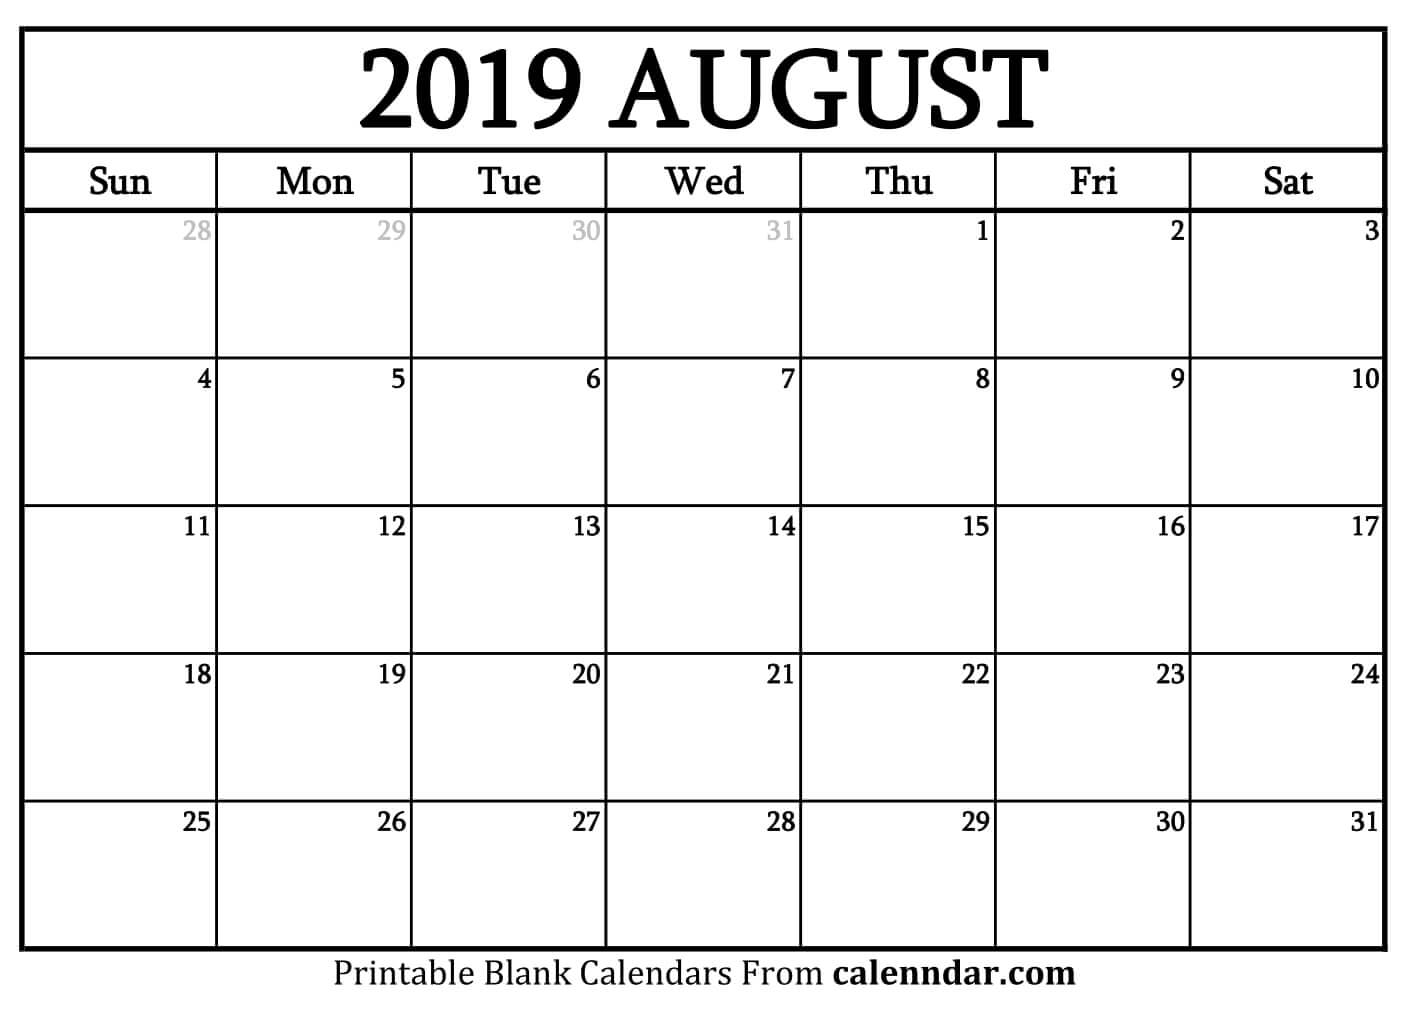 Blank August 2019 Calendar Templates - Calenndar in Picture Of August On Calendar